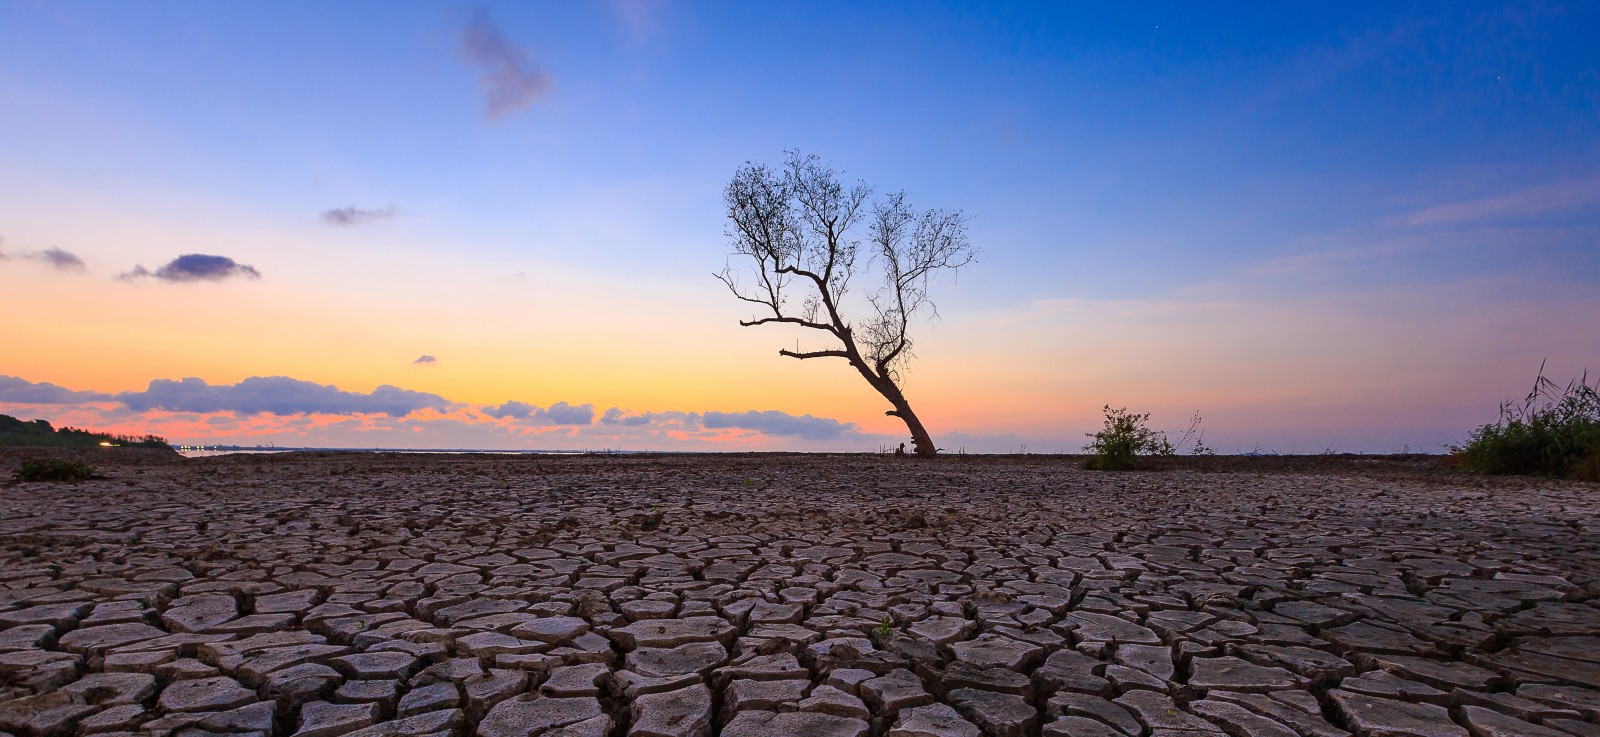 CLIMWAR_cracked earth drought © Chaisit Rattanachusri / Shutterstock